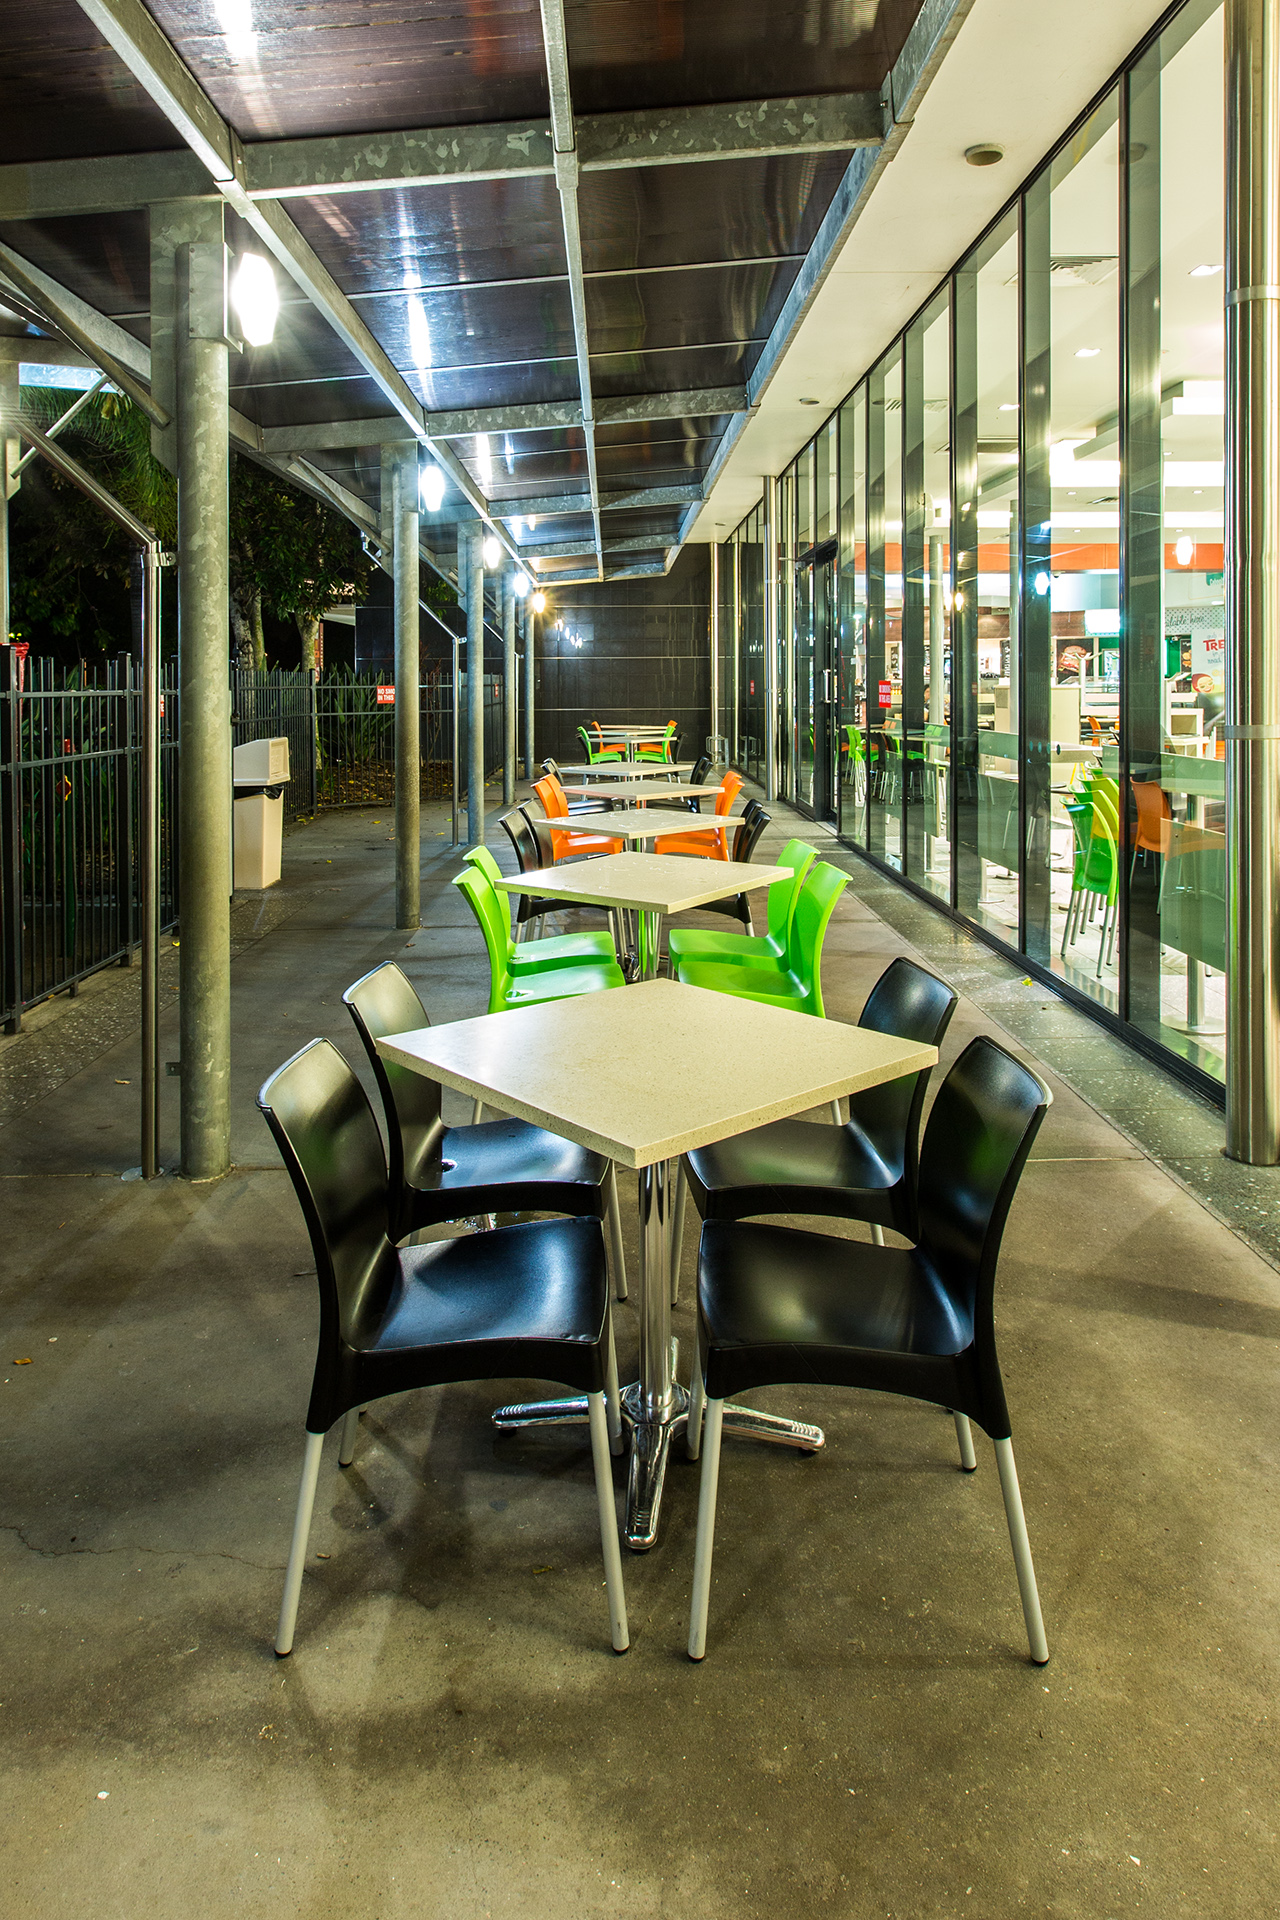 Office Furniture Caboolture Bp Food Court Furniture Tables Chairs Stools Nextrend